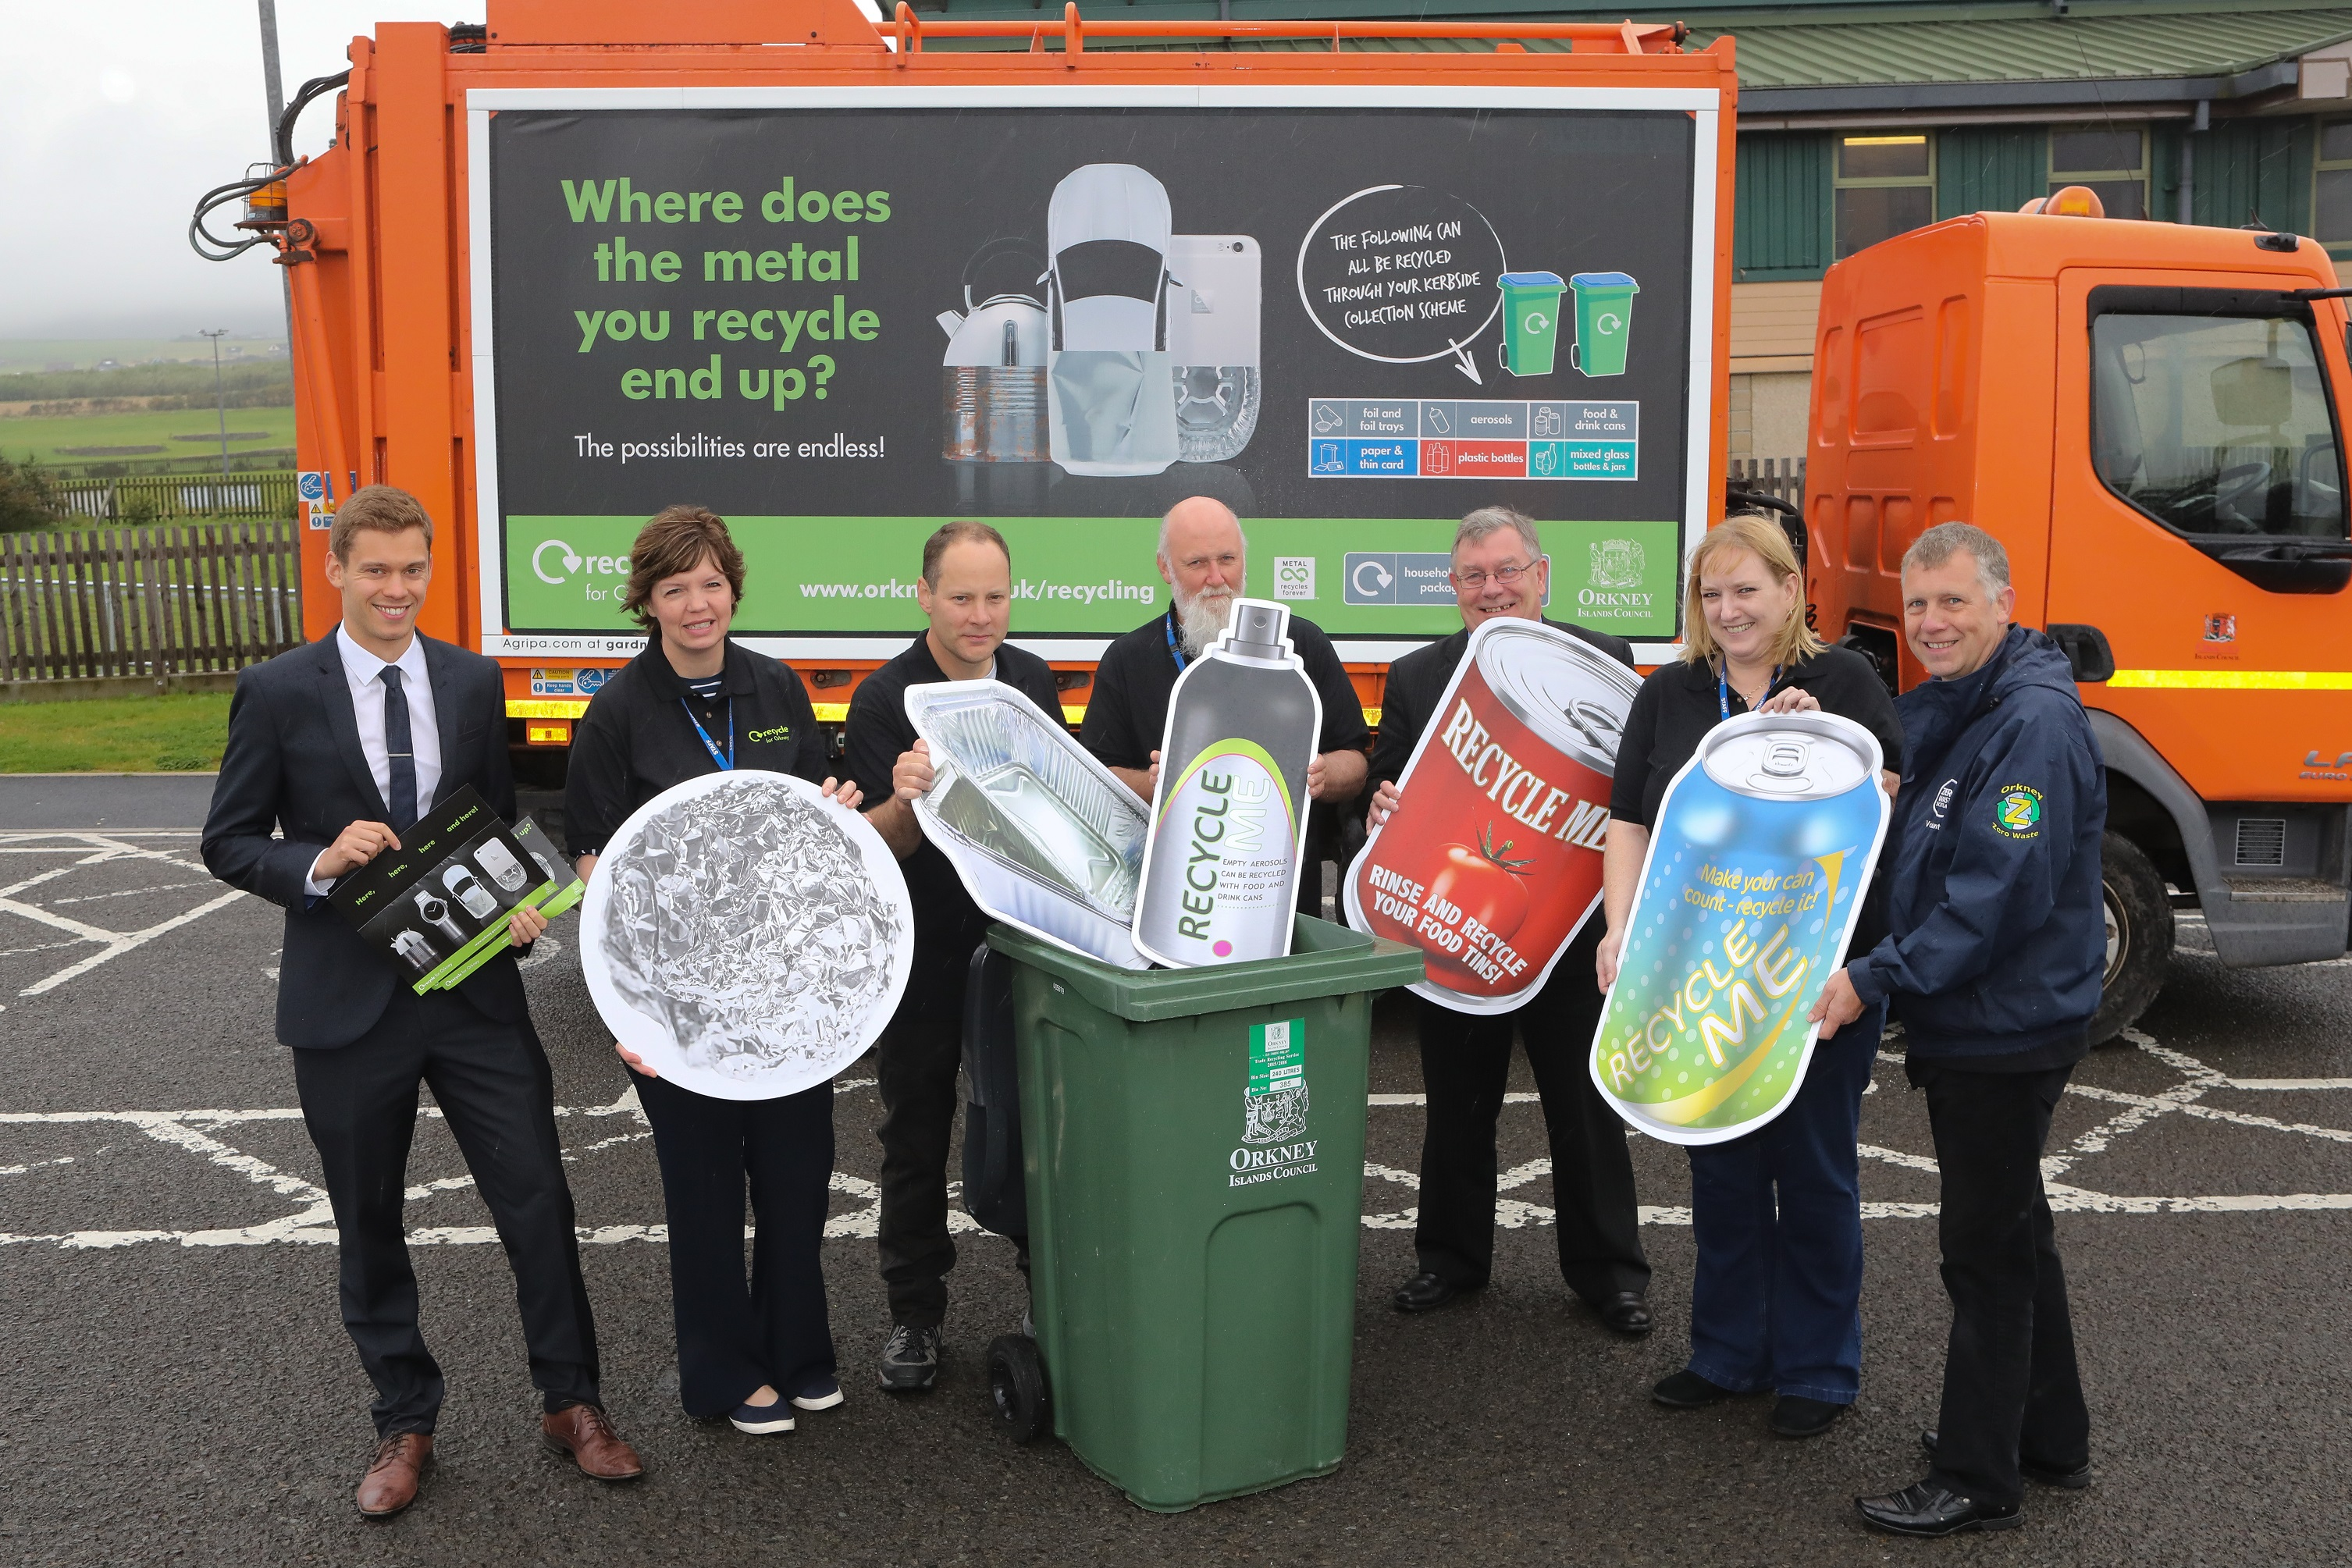 A group of representatives from MetalMatters and Orkney Council holding cardboard cut-outs of metal packaging items in front of one of their recycling vehicles which bears the MetalMatters signage artwork.